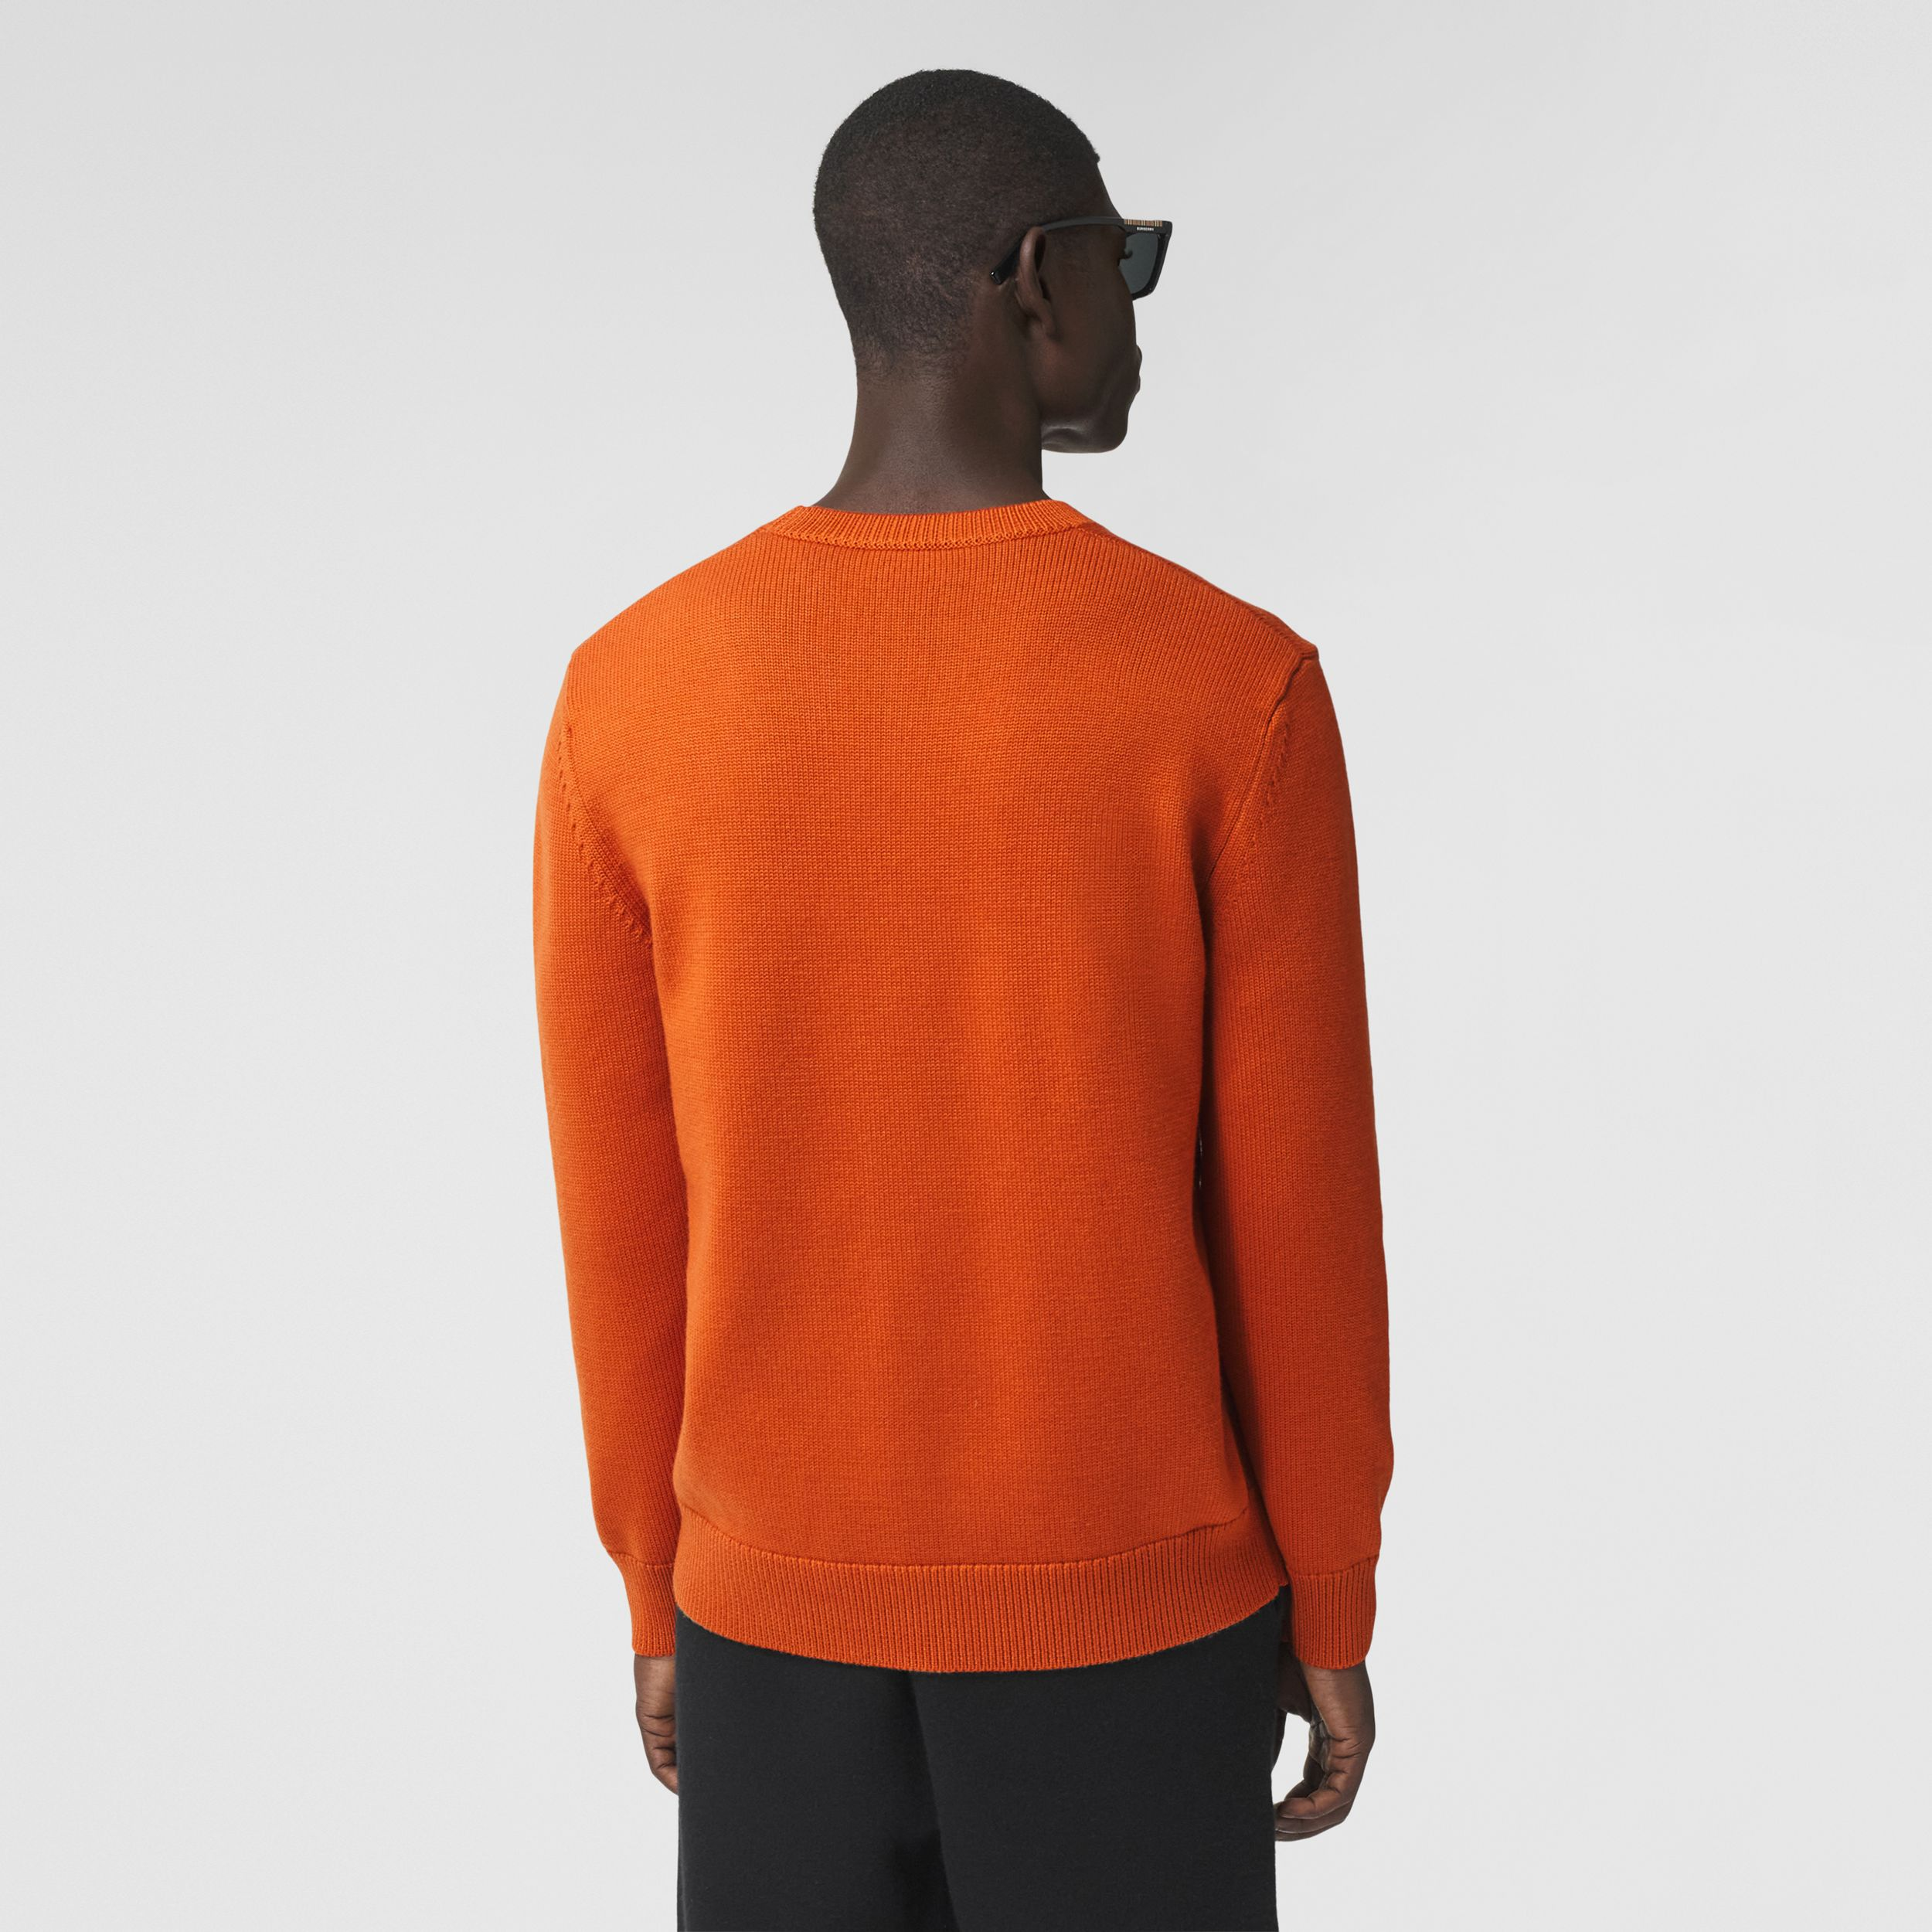 Varsity Graphic Merino Wool Jacquard Sweater in Burnt Orange - Men | Burberry - 3